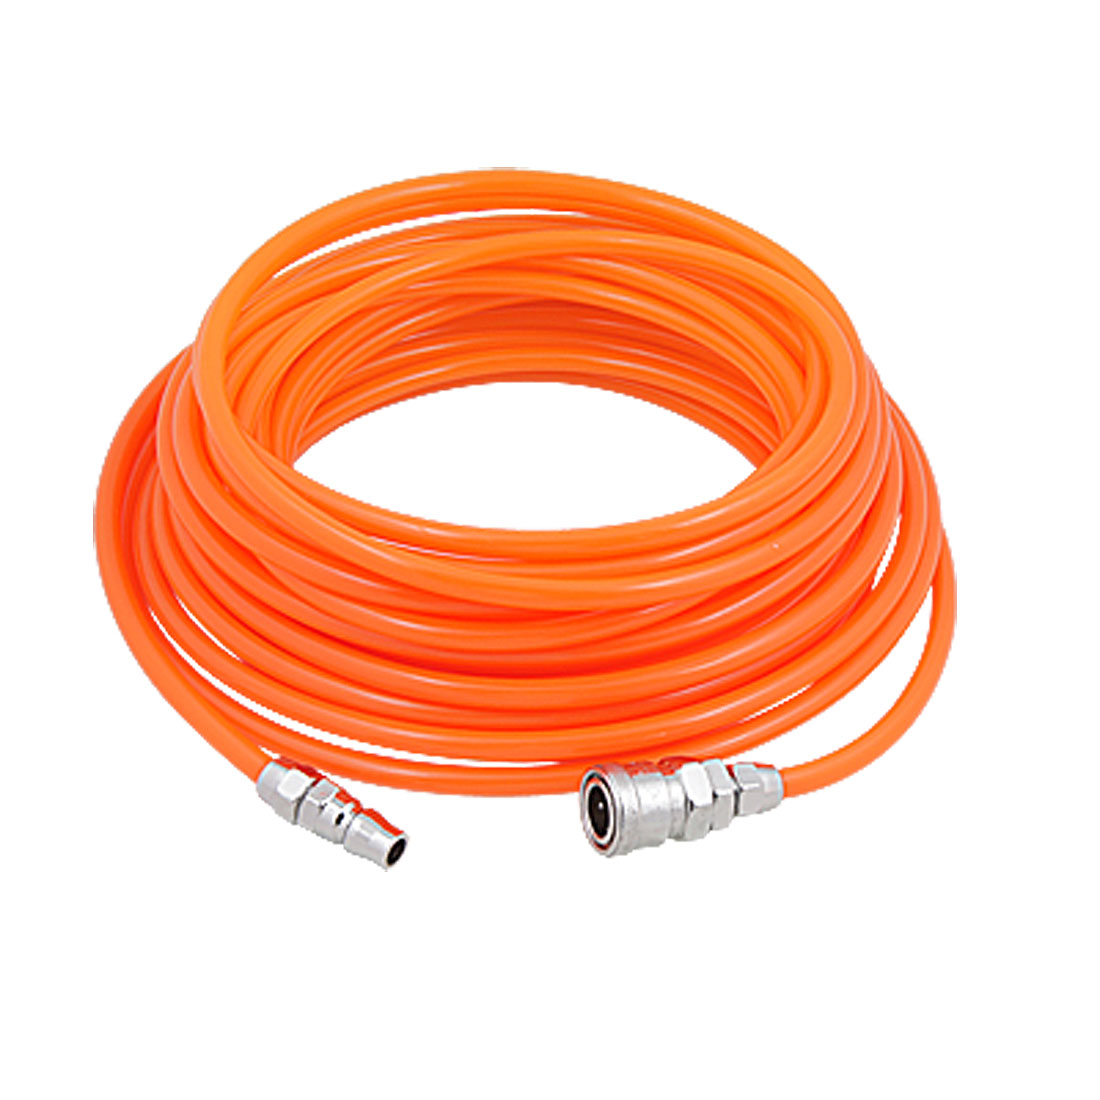 Home Factory Orange Flexible Gas Pipe Tube 7.5mm Diameter